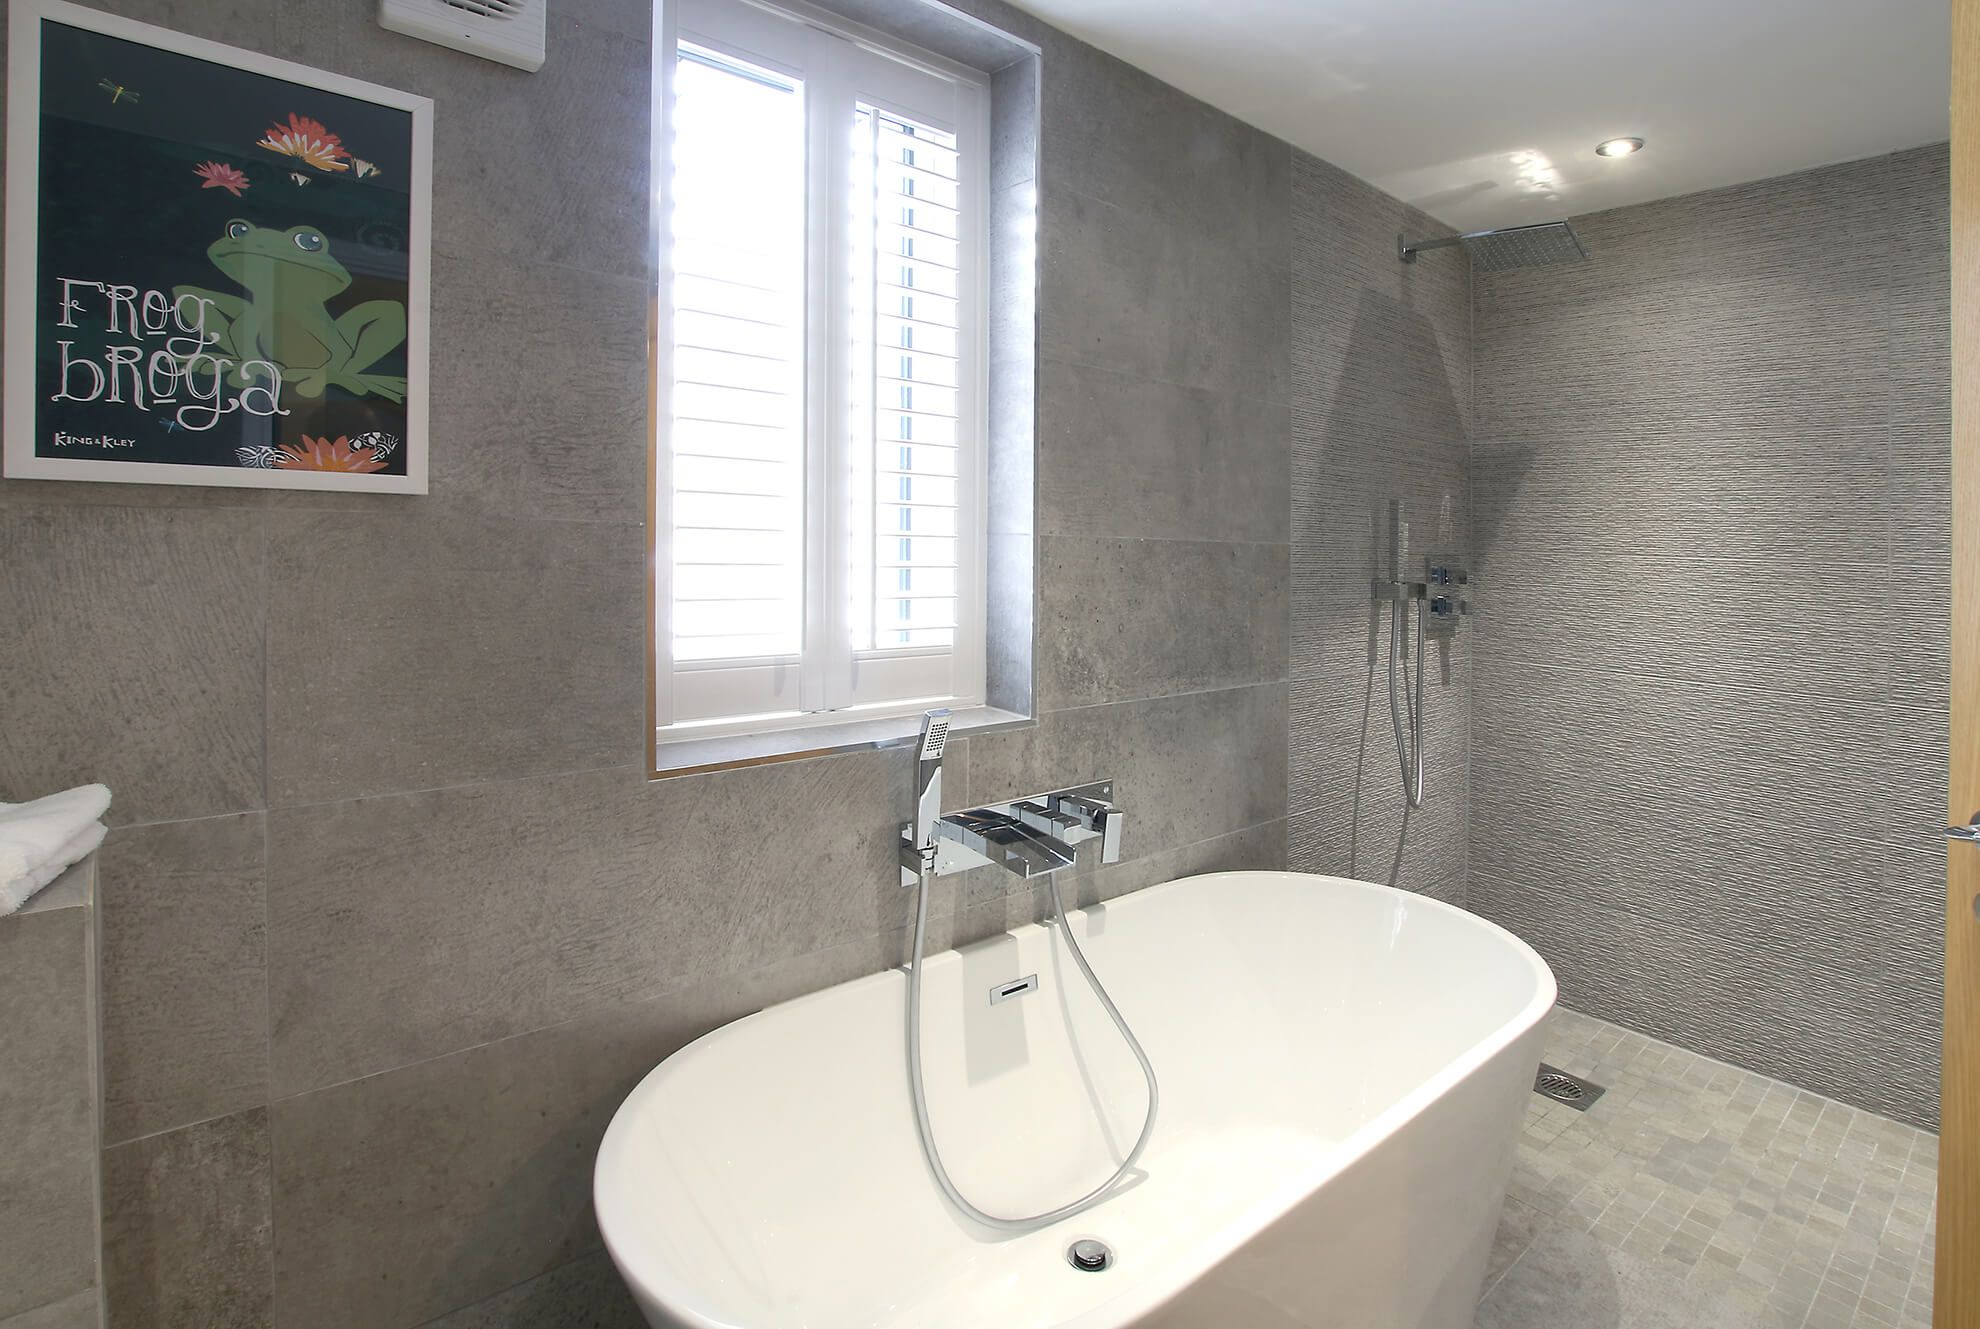 Ground floor: Stand alone bath with waterfall tap